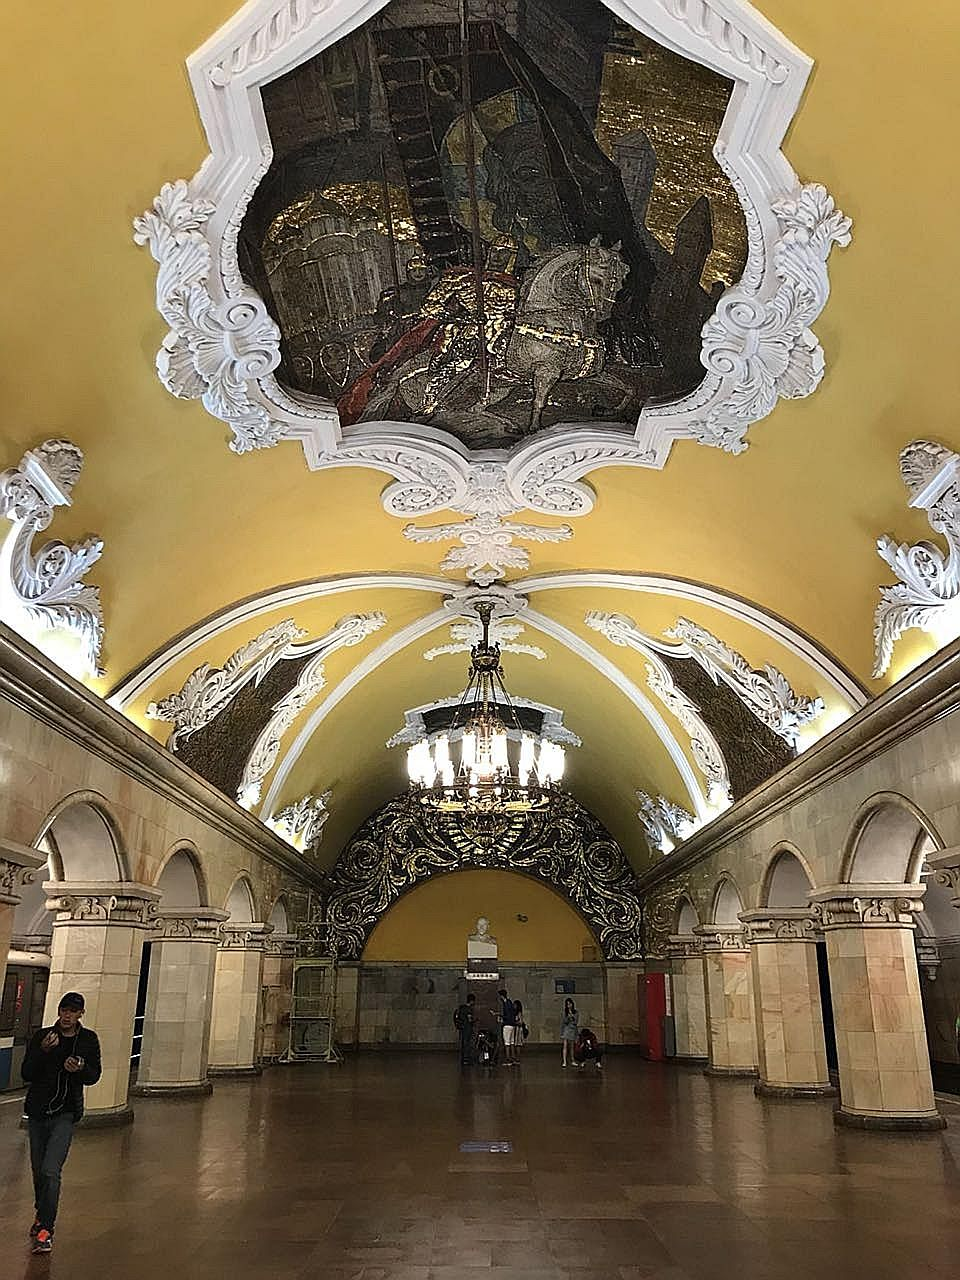 Mural at Park Pobedy, which features the world's fourth-deepest metro station at 84m underground. Komsomolskaya station has rich decoration devoted to the Soviet victory in the Great Patriotic War. A woman rubbing the nose of the dog b